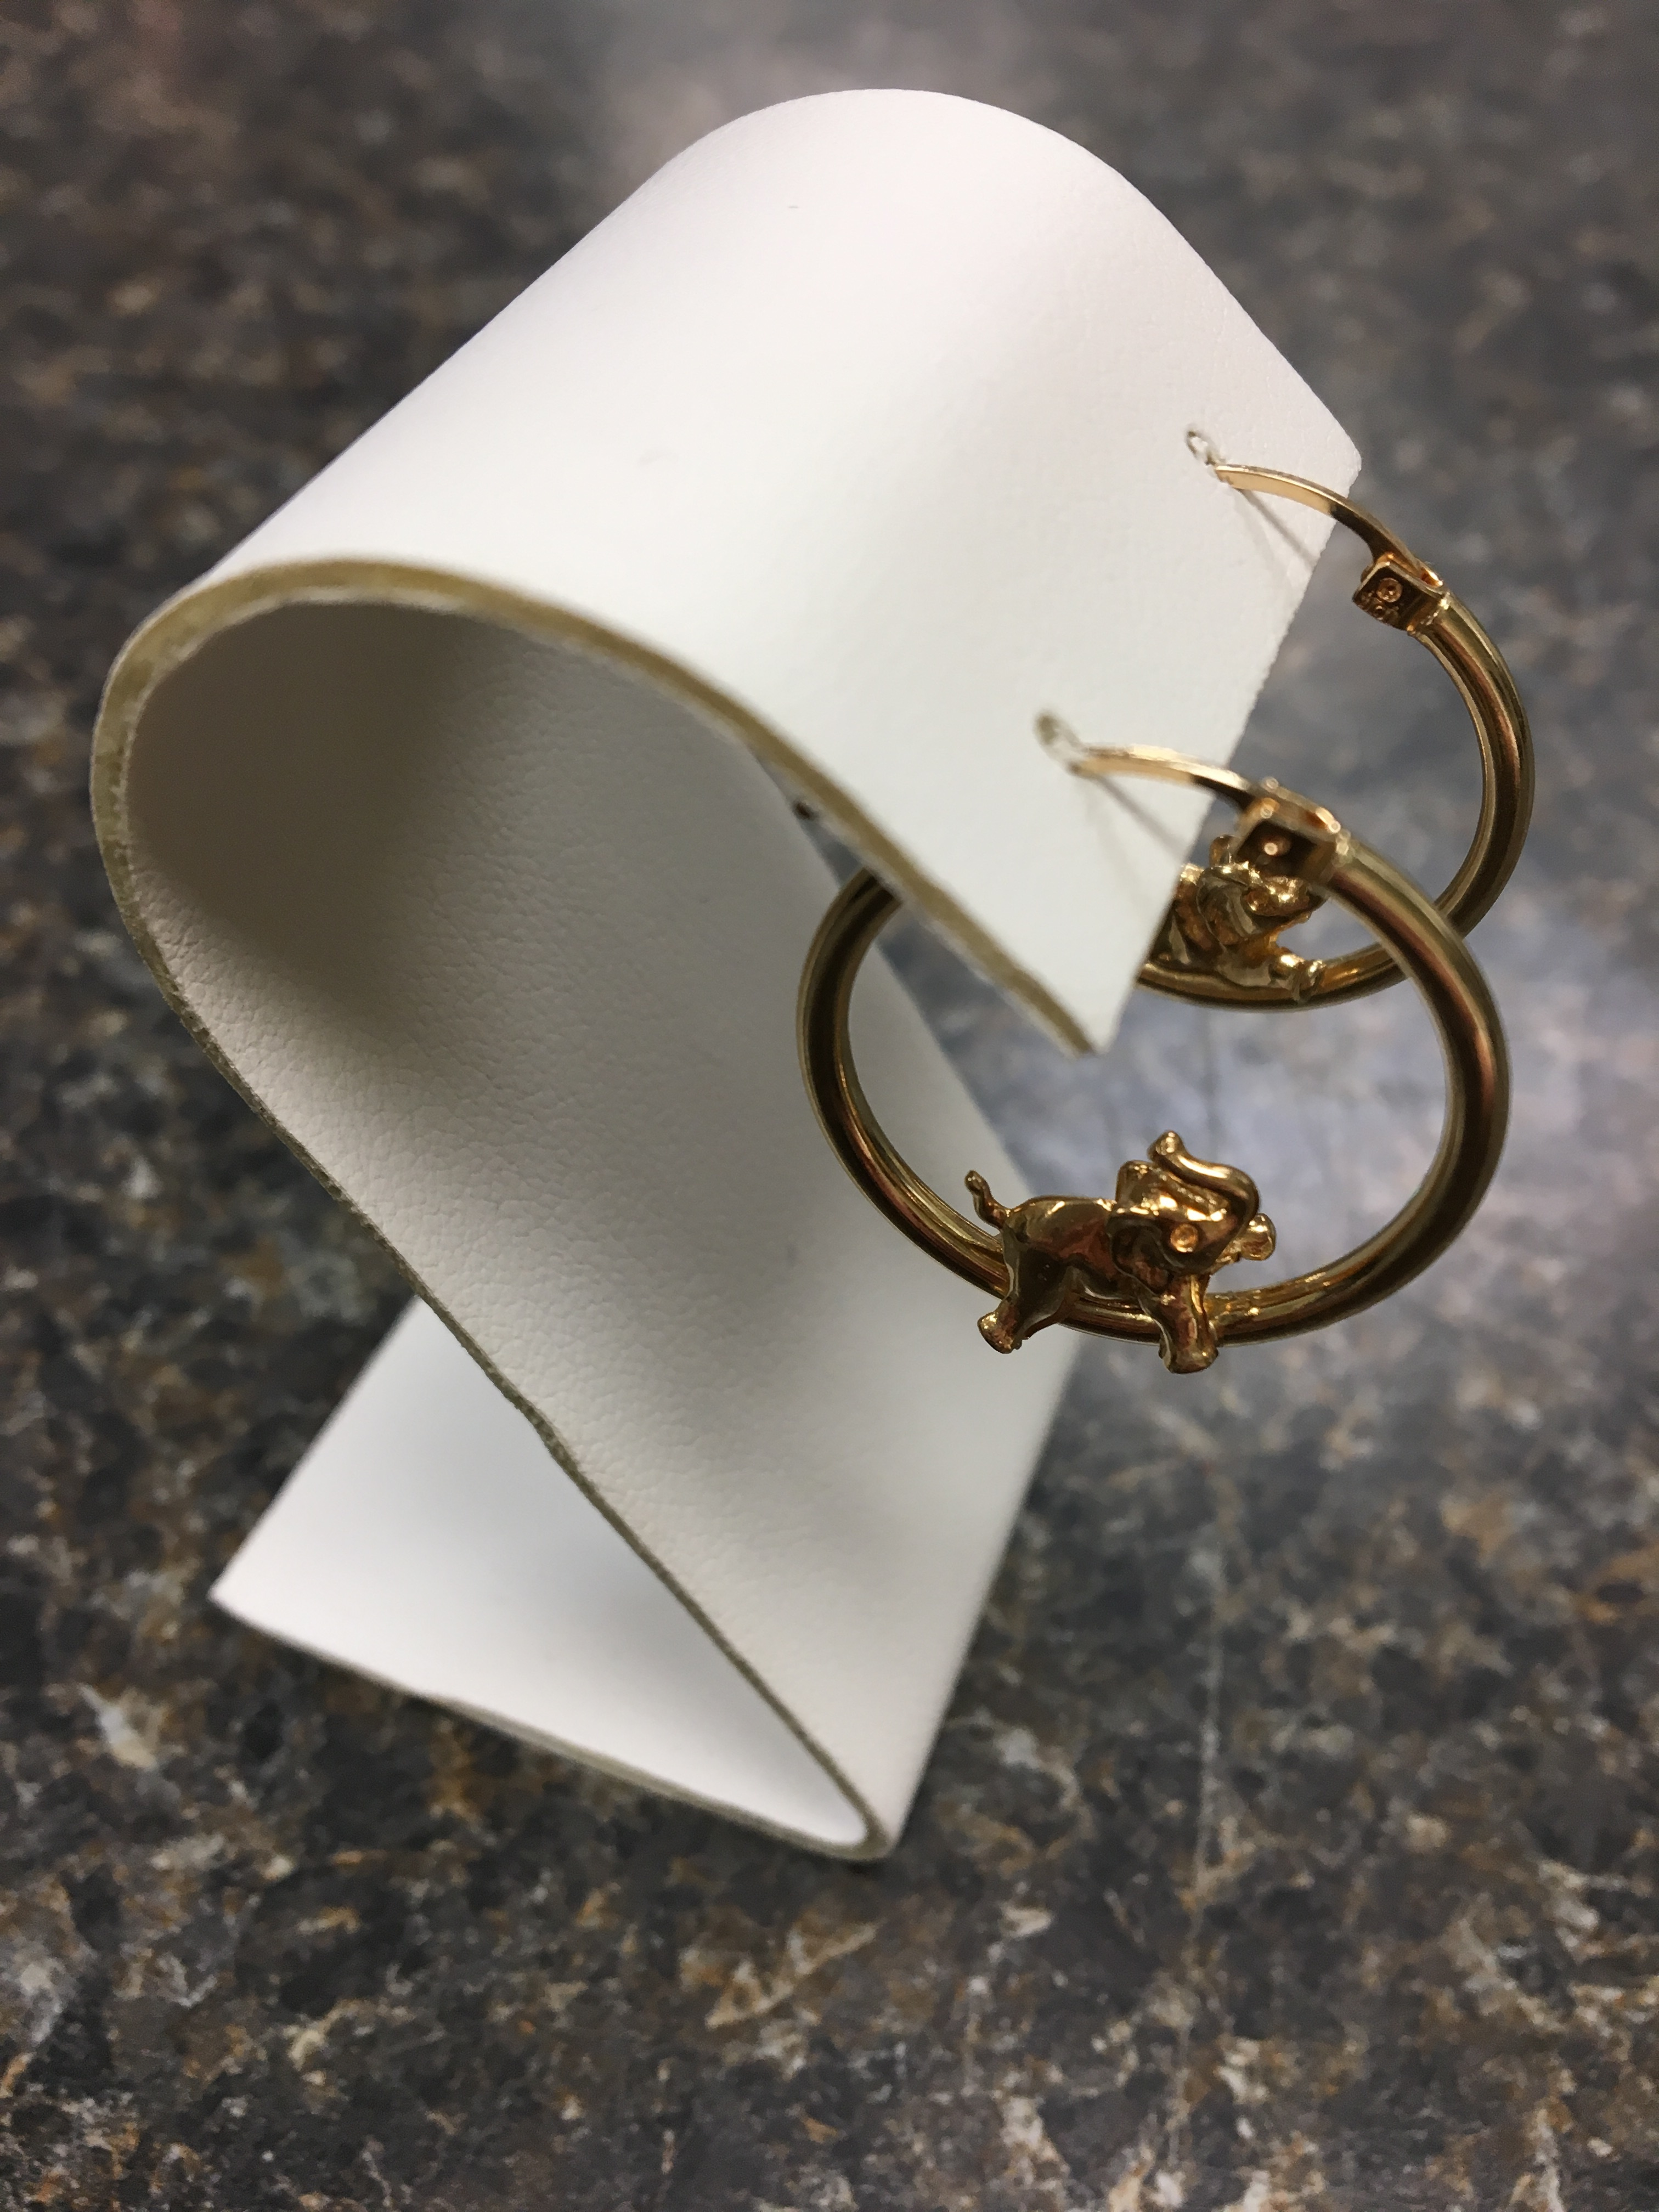 10 KT YELLOW GOLD HOOP EARRINGS WITH ELEPHANTS INSIDE. 2.21 DWT